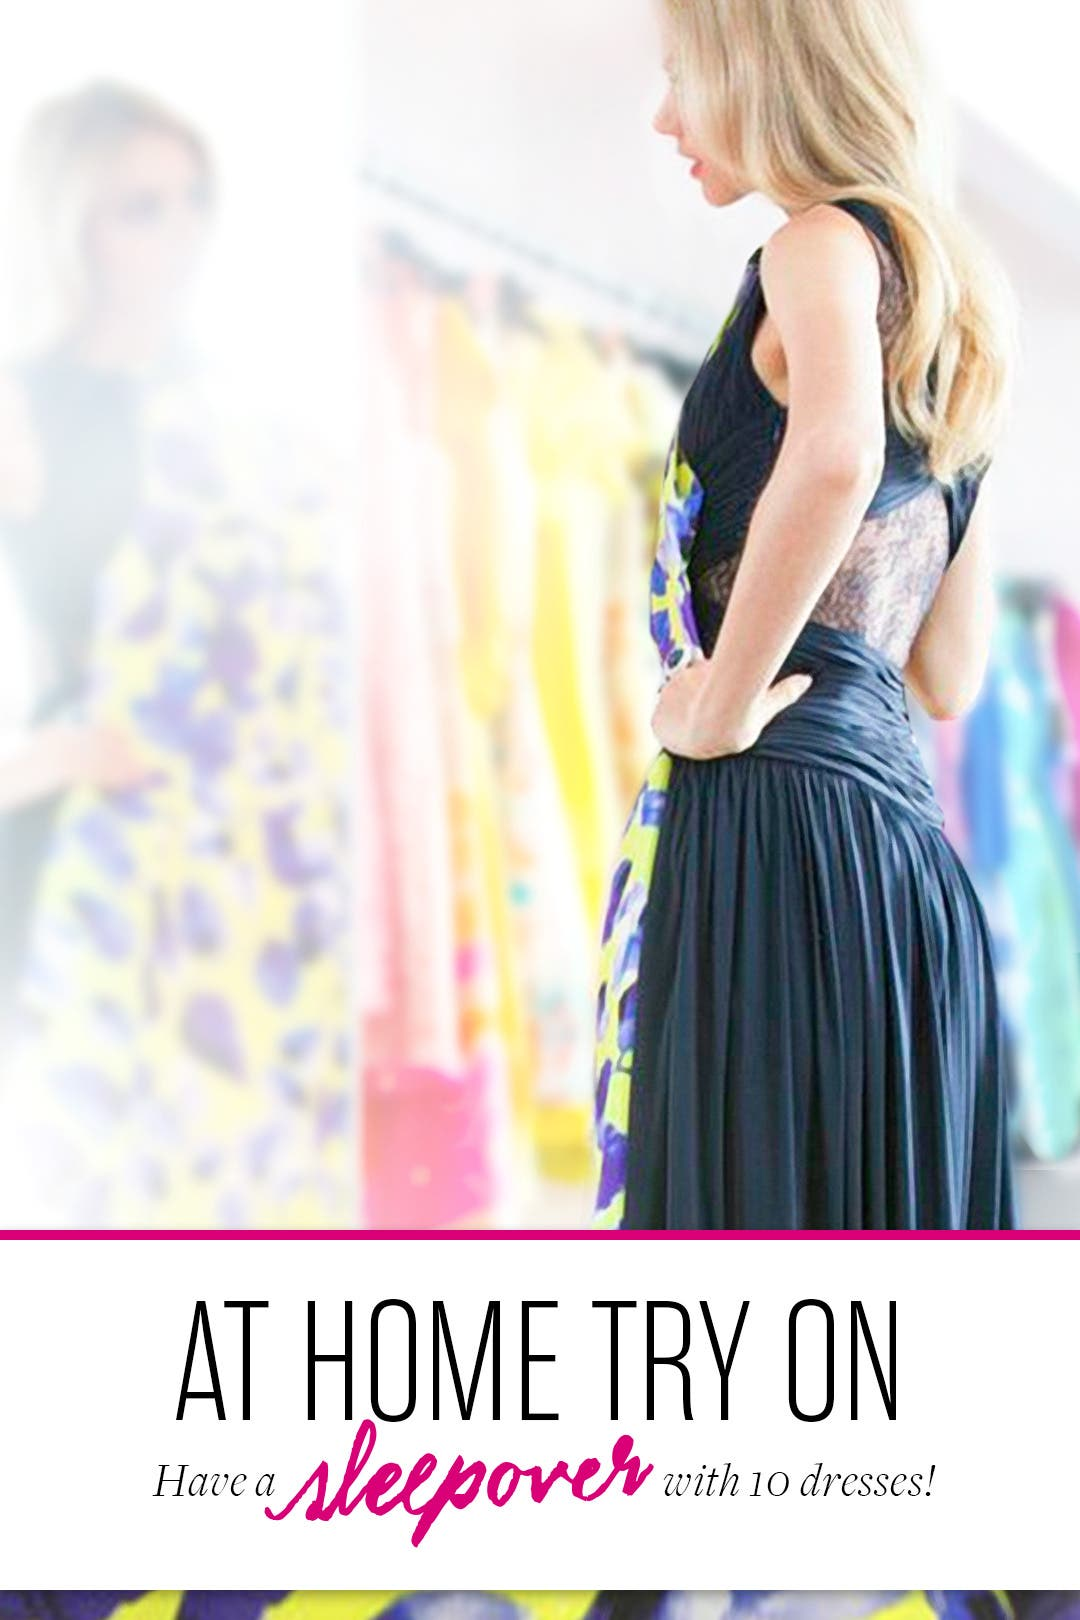 At Home Try On 10 Dresses by Rent the Runway